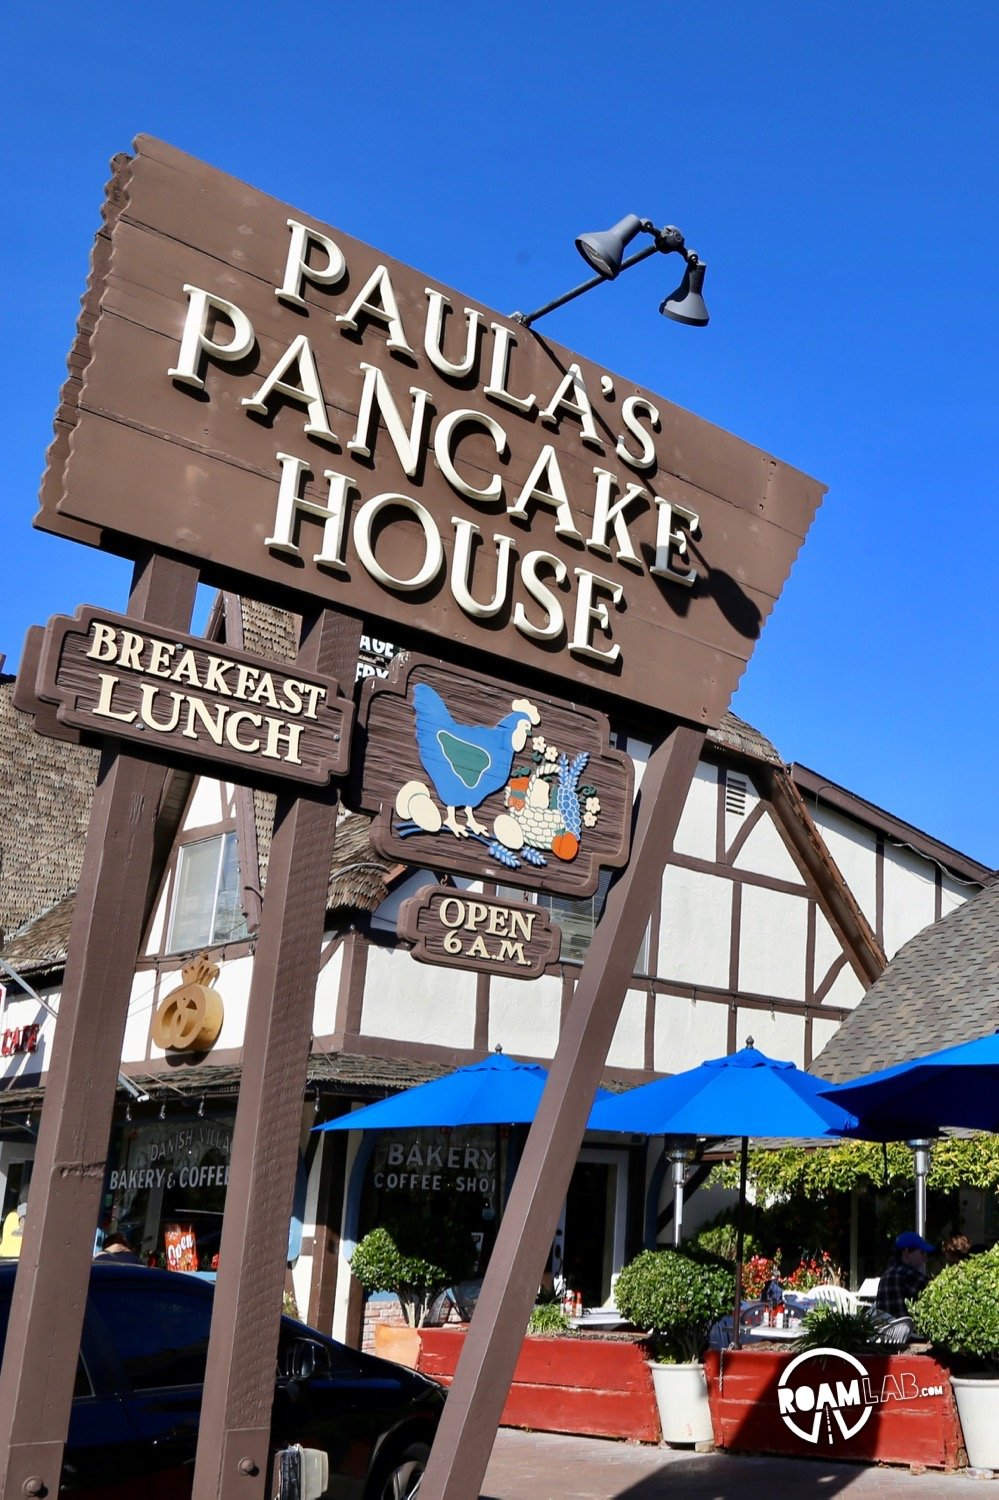 It's 10AM but I am waiting to eat because we are half an hour outside of Solvang, California and I'm craving Danish pancakes from Paula's Pancake House.